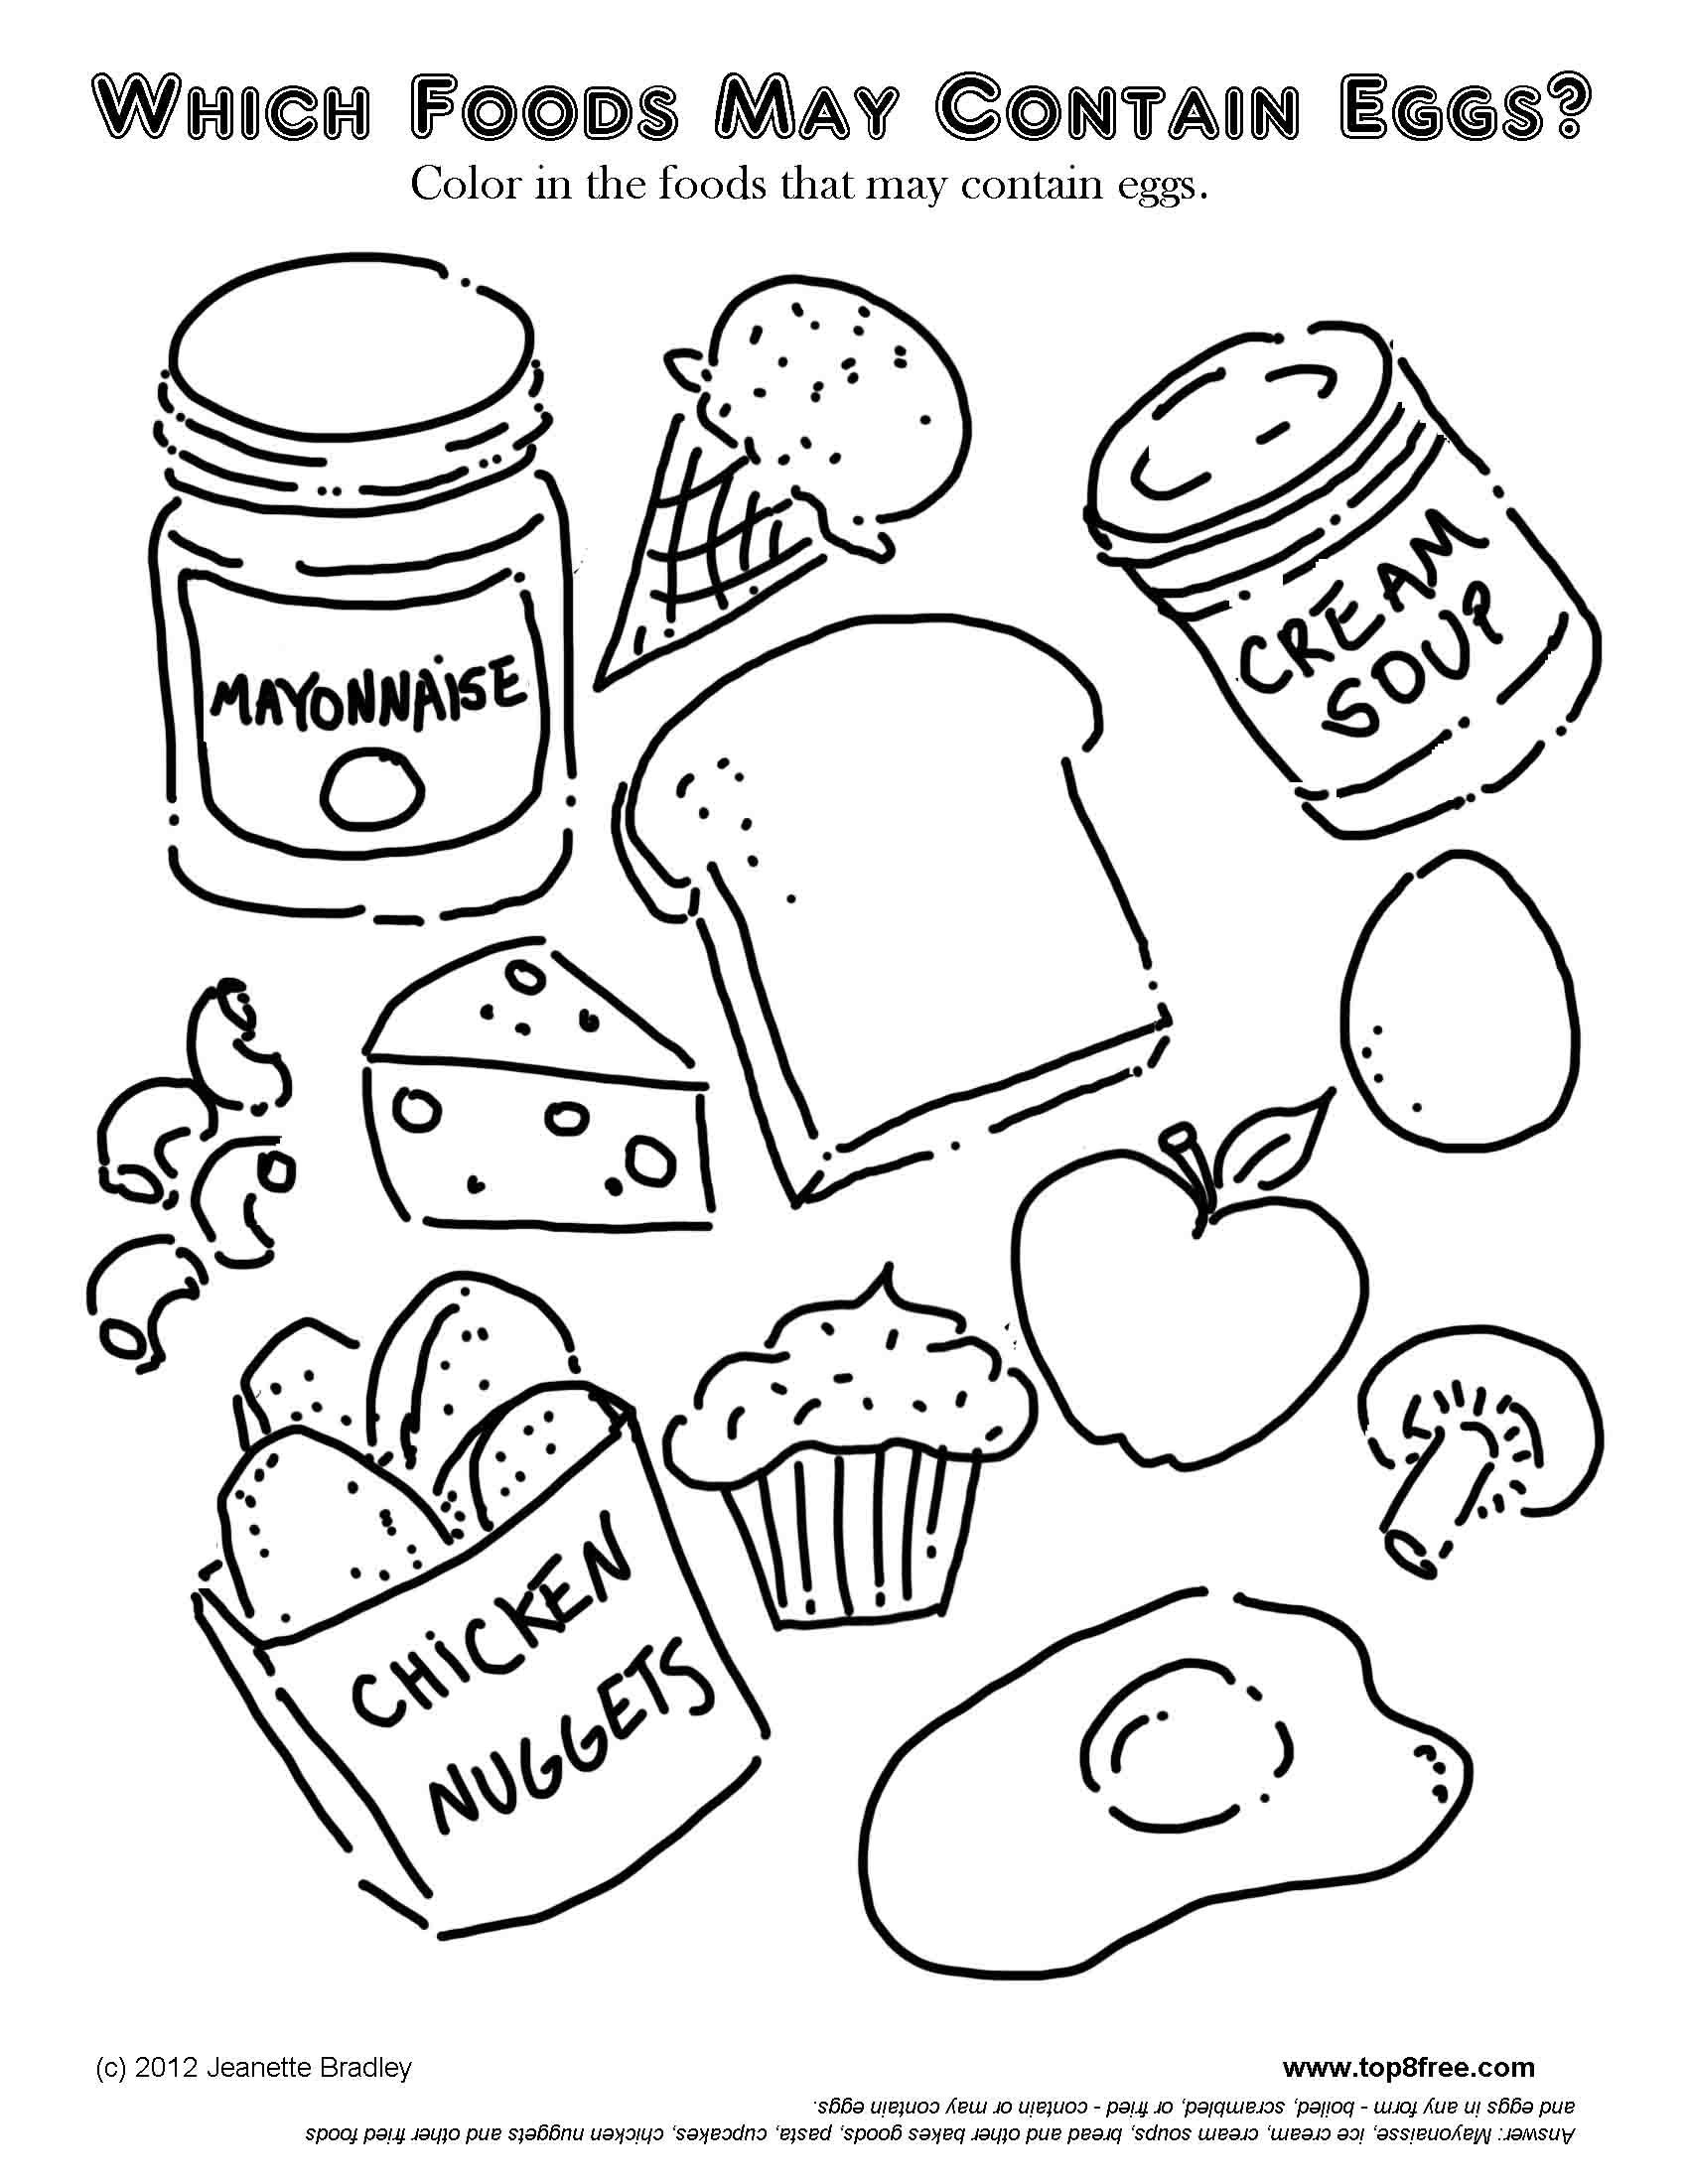 Egg Allergy Coloring Page Food coloring pages, Black